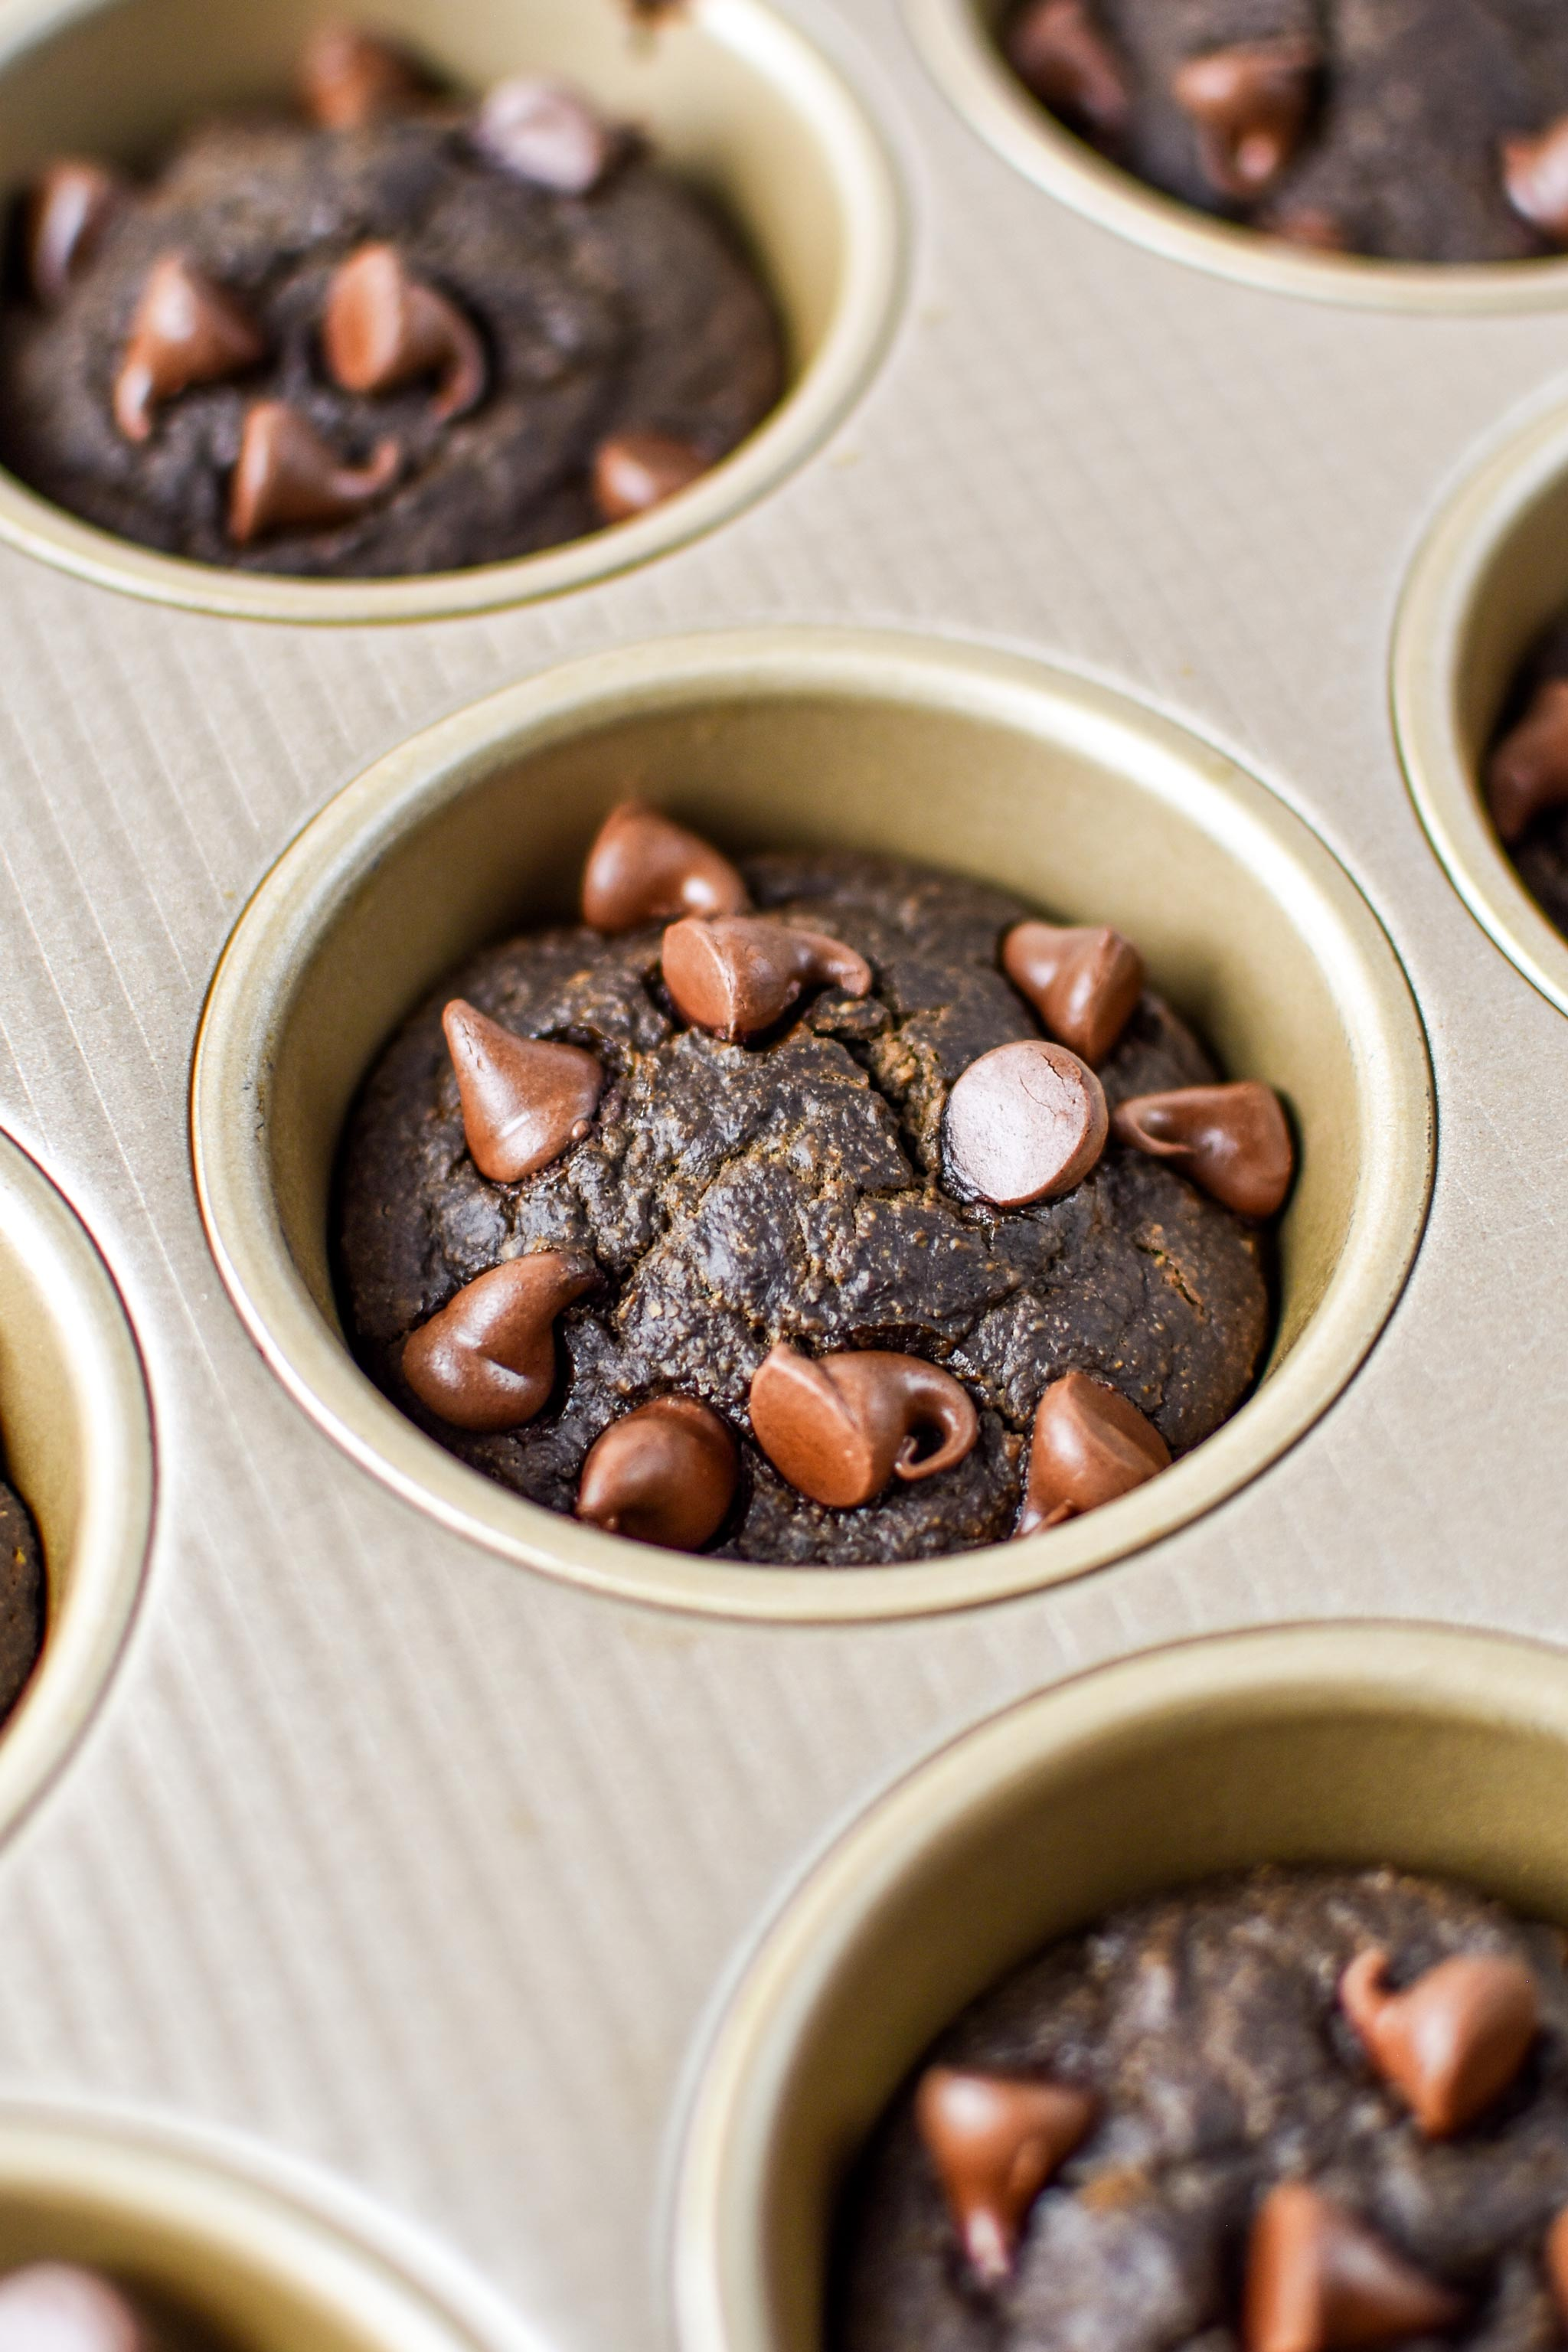 baked chocolate spinach blender muffins